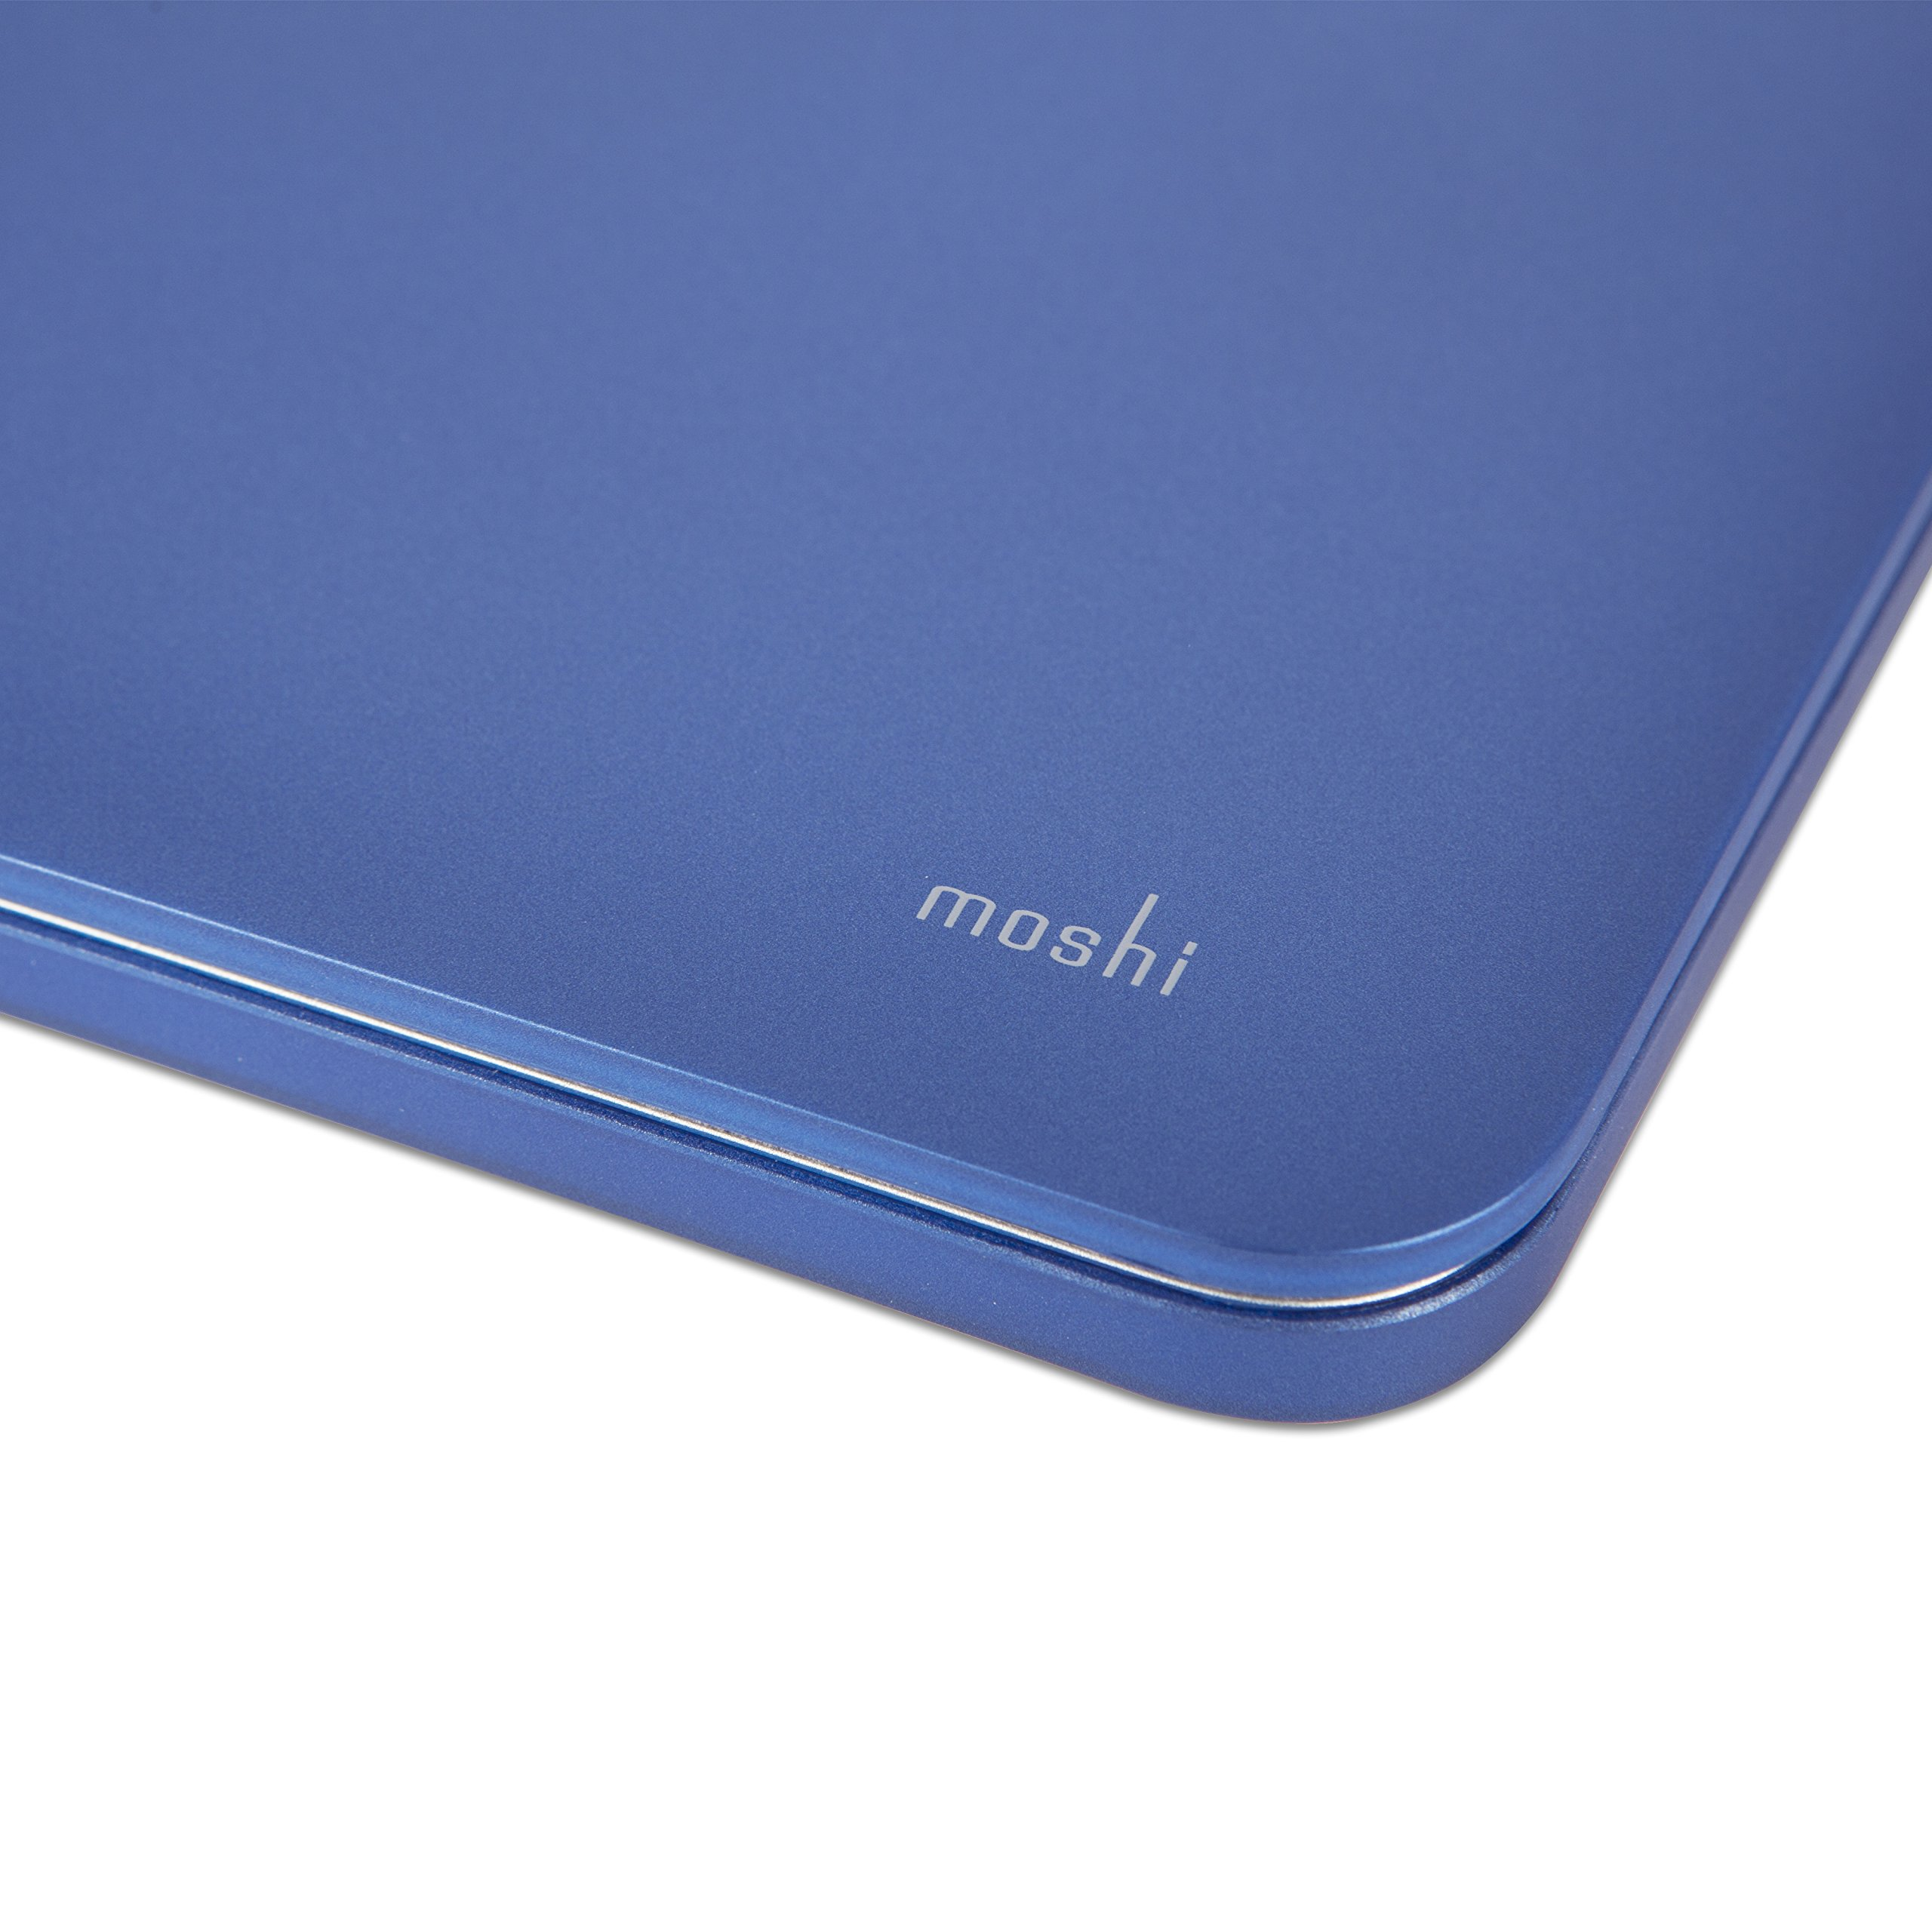 Moshi iGlaze Hard Case for MacBook Pro Retina 13'' (2012-2015) (Indigo Blue) by Moshi (Image #4)